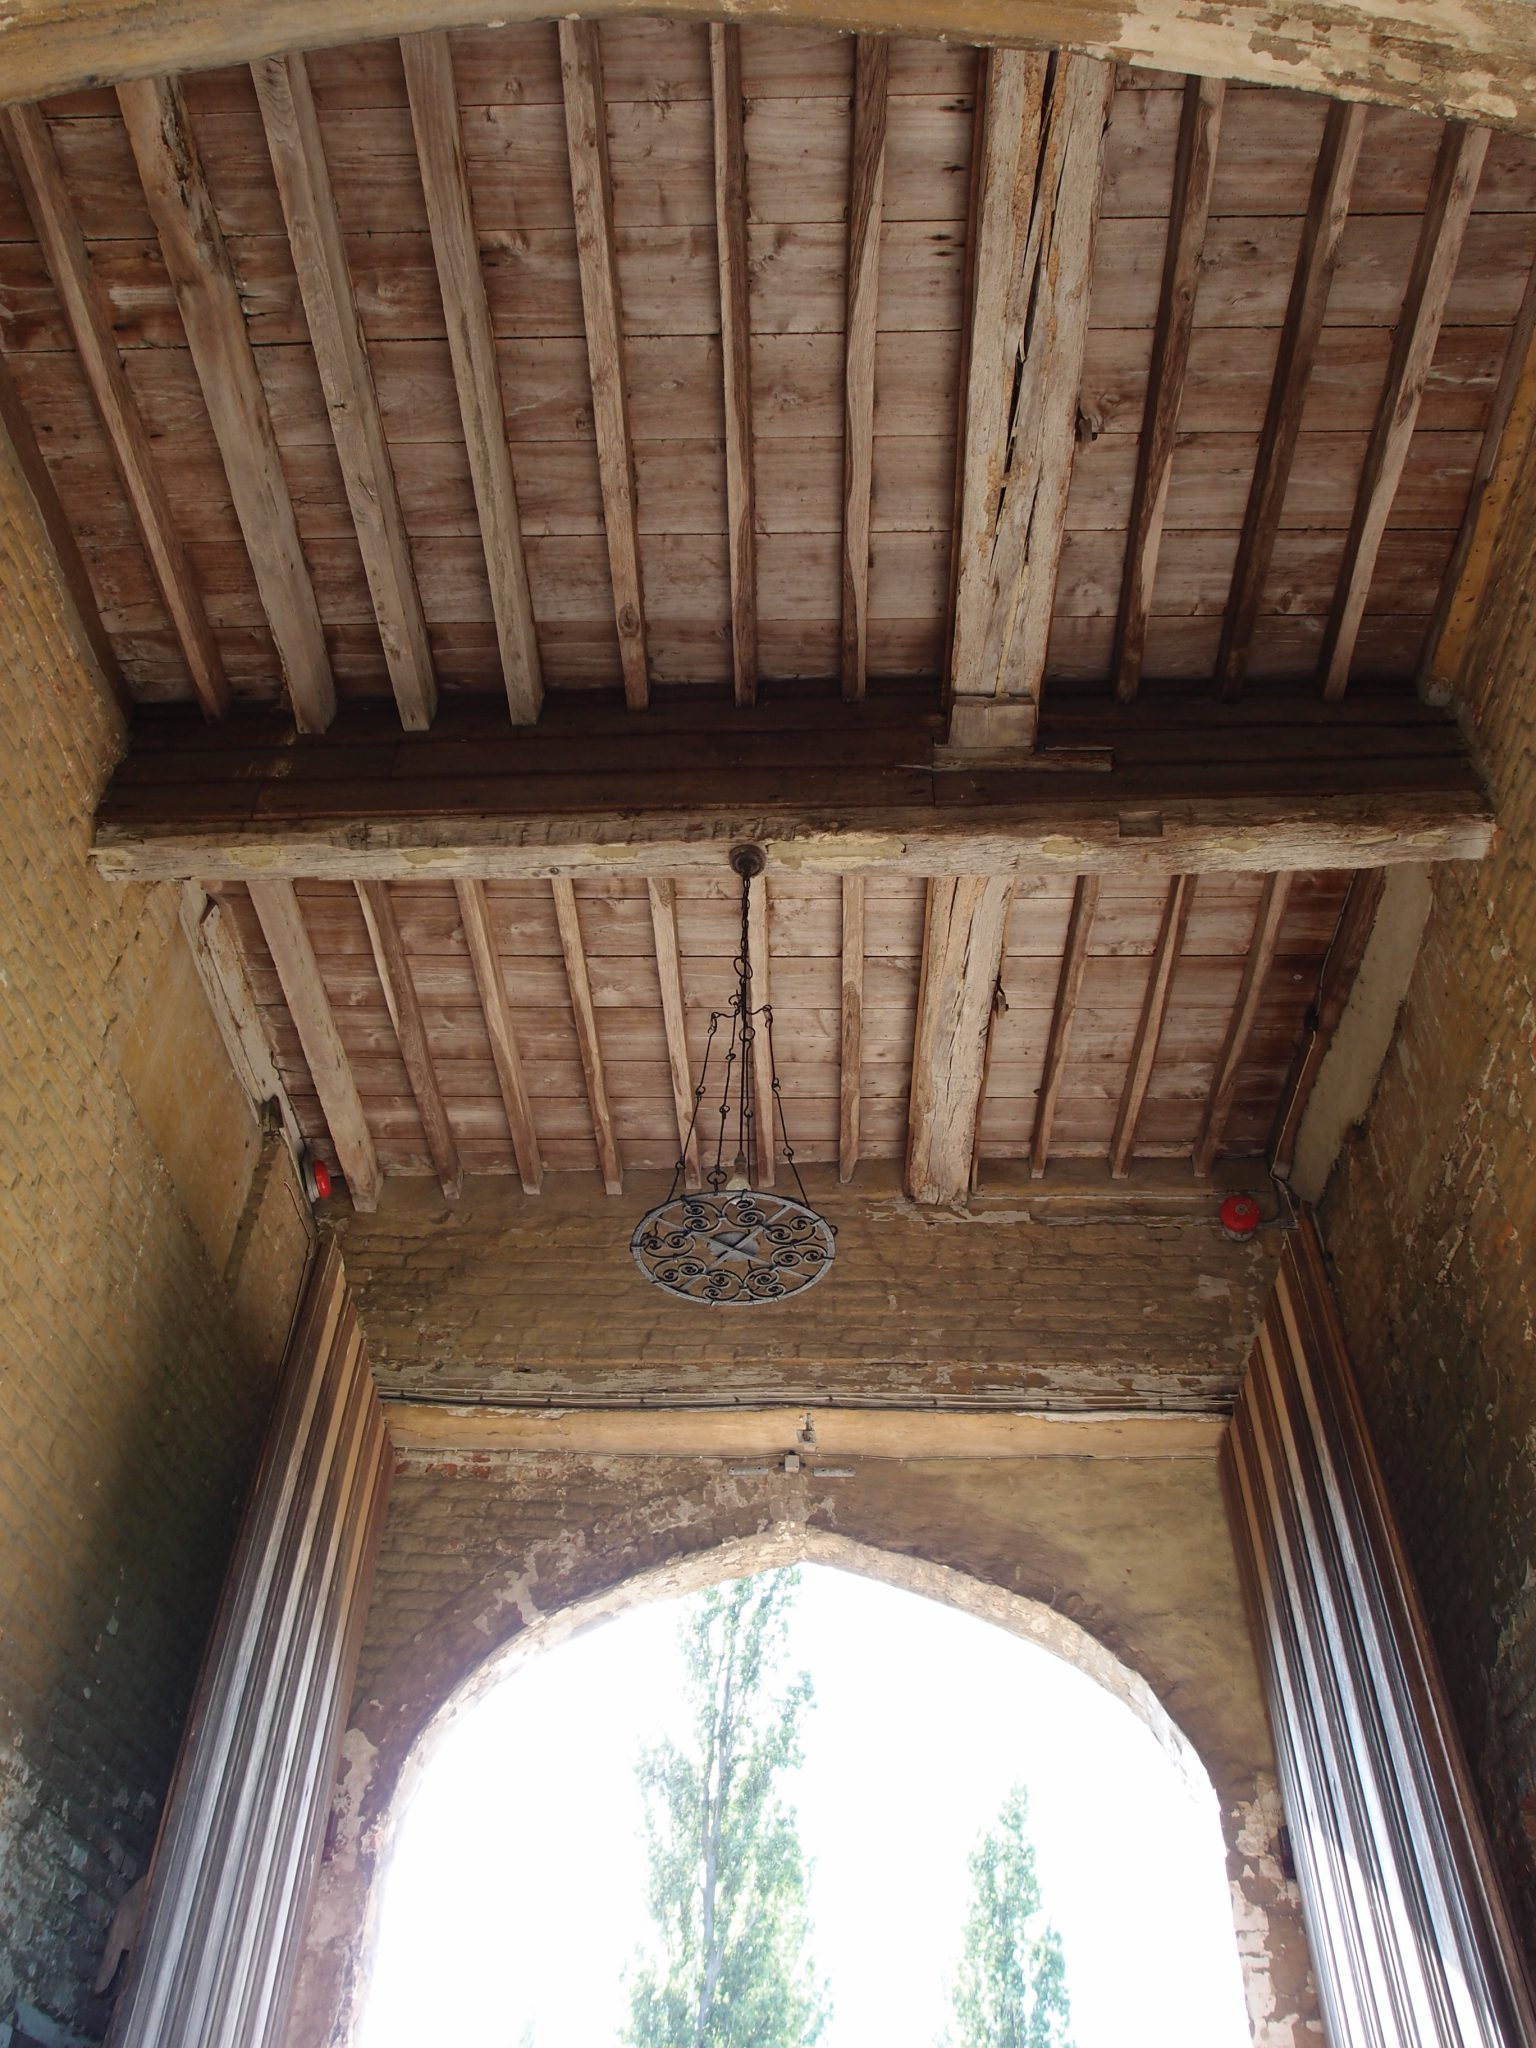 Detail of overhead beams, dating from 1530, in the tunnel through the Main House